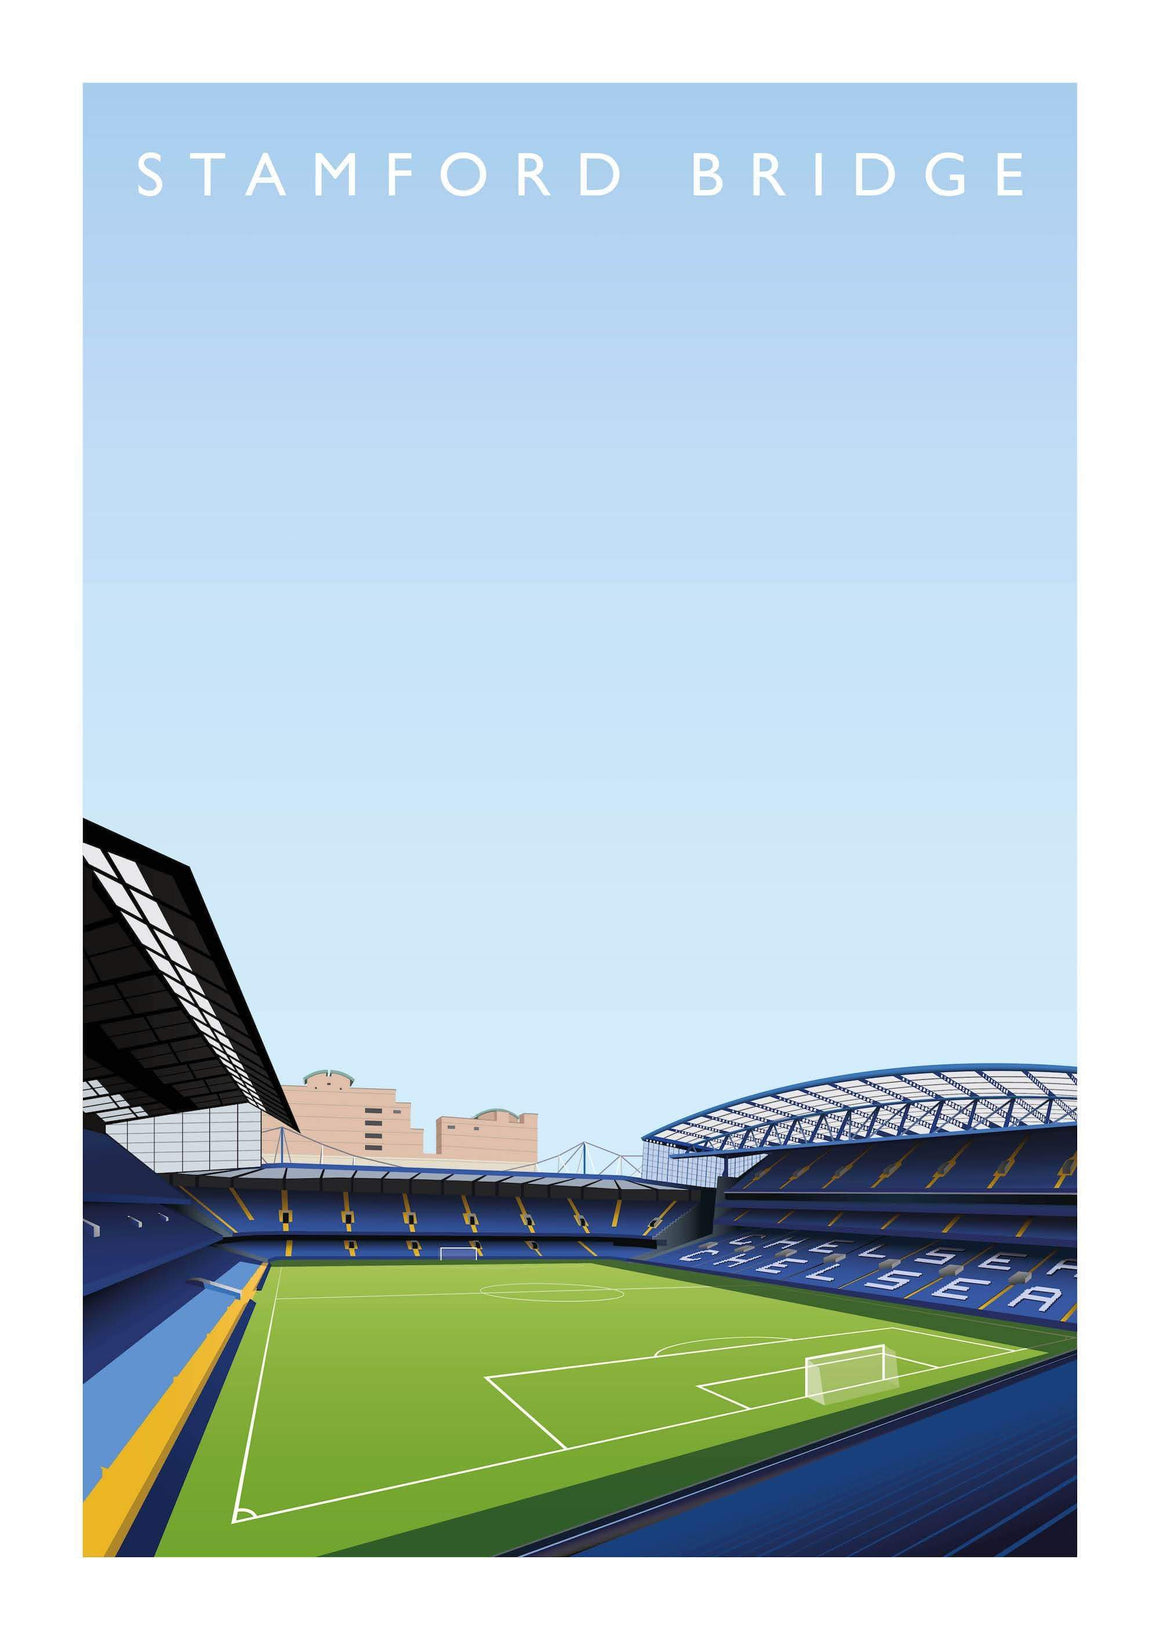 Poster of Chelsea ground Stamford Bridge - Football Shirt Collective